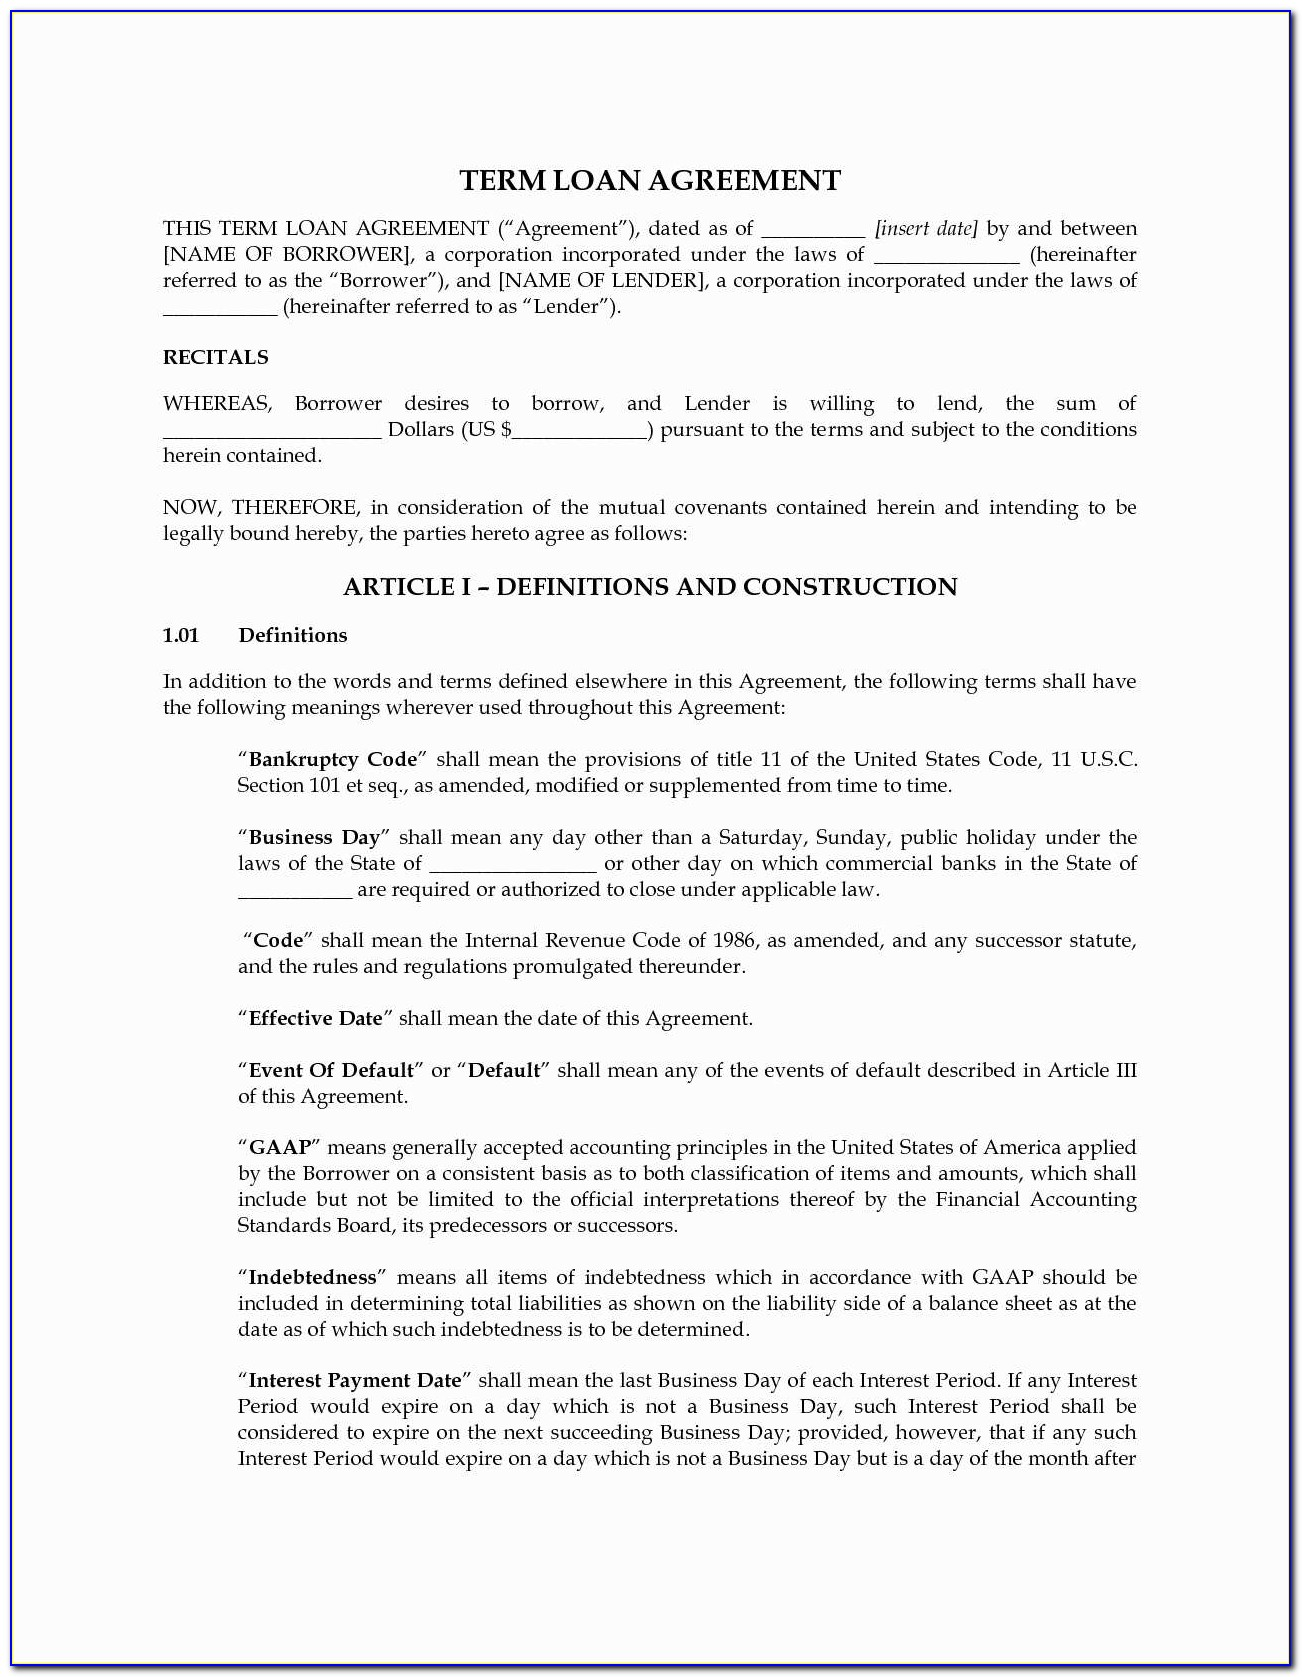 Hipaa Business Associate Agreement Template 2017 Complete Hipaa Business Associate Agreement Template 2017 Best Ki 2631